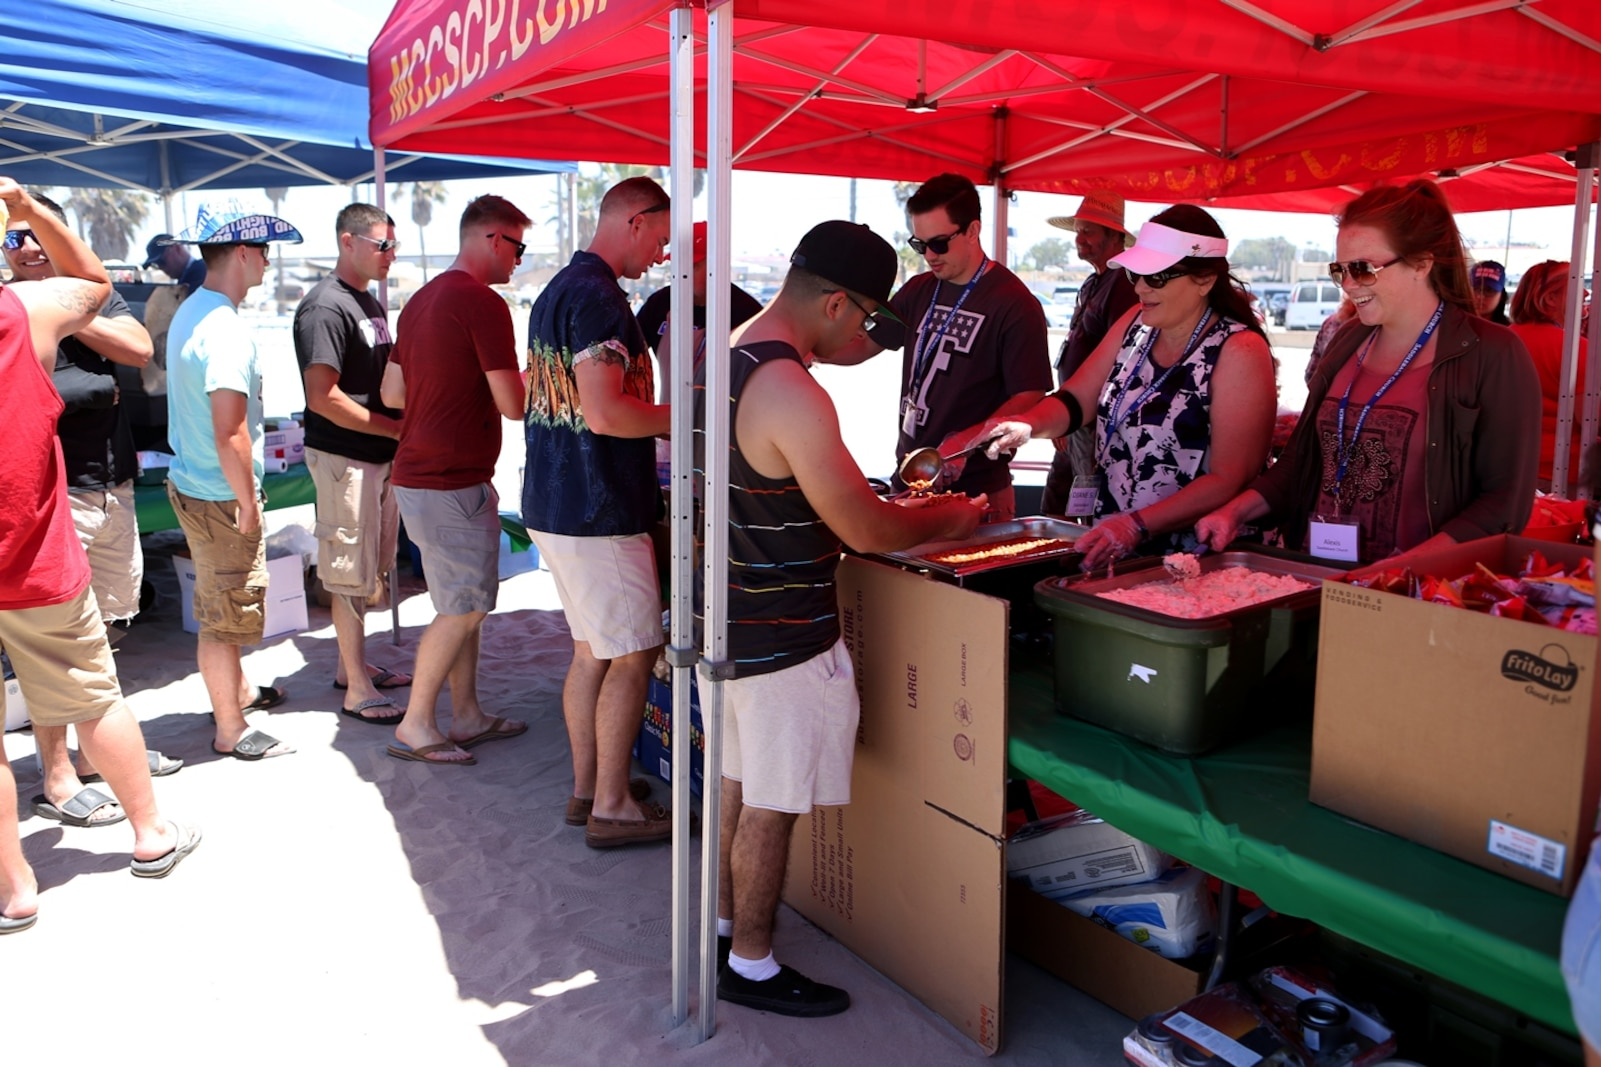 Marines, Sailors and family members of Combat Logistics Battalion 5, 1st Marine Logistics Group, enjoy food, fun, and festivities hosted by volunteers from Saddleback Church and Marine Corps Camp Services aboard Camp Pendleton, Calif., June 17, 2016. Aside from offering service members and their families some time to come together and relax, the event supported the 101 Days of Summer Campaign, which aims to promote increased safety during the summer months. (U.S. Marine Corps Photos by Sgt. Carson Gramley/released)